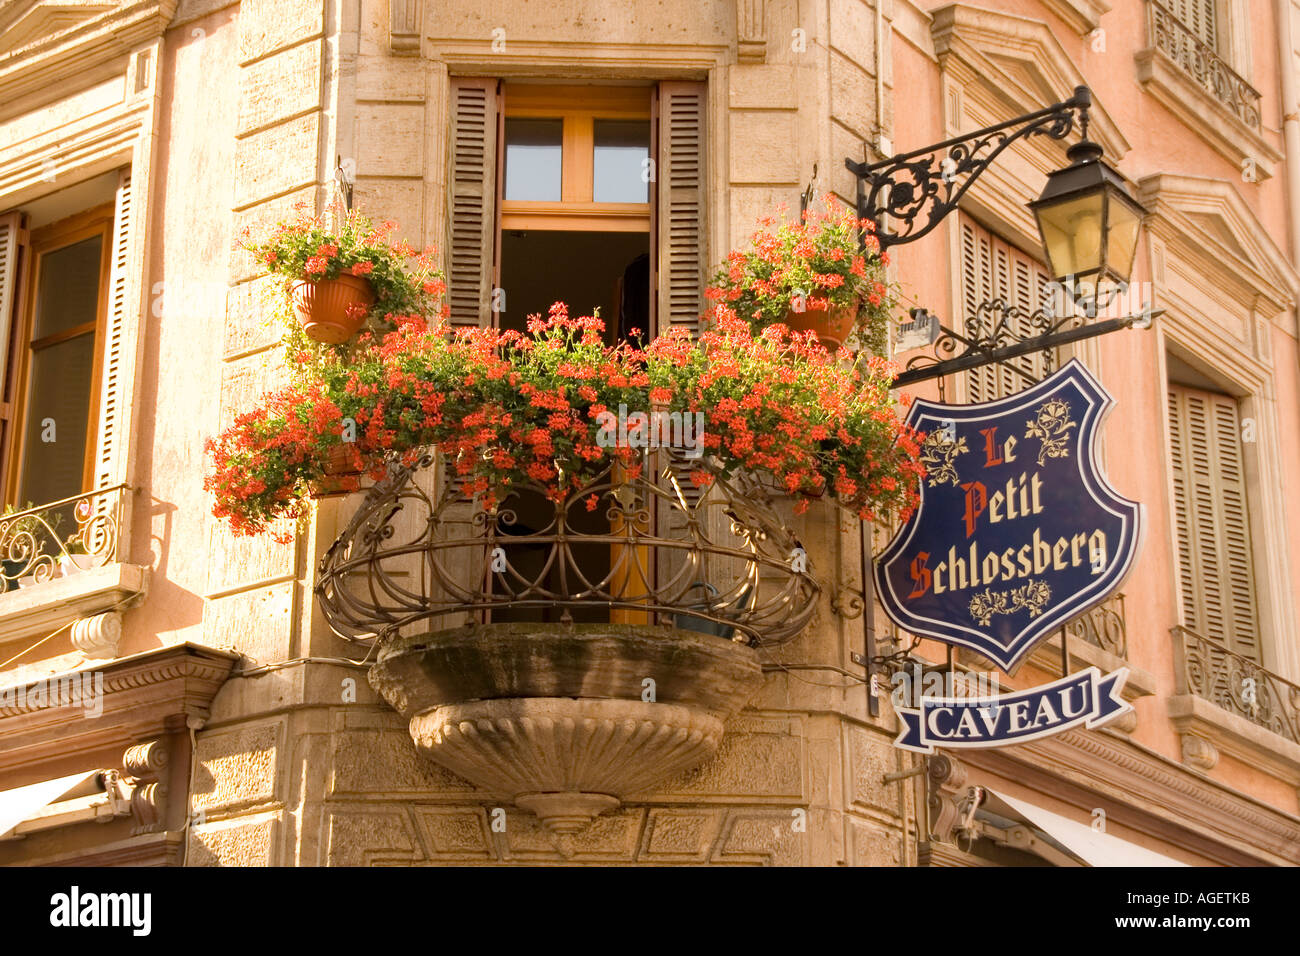 Apartment Balcony With Flowers And A Wine Shop Hanging Sign In Colmar Haut Rhin Alsace France